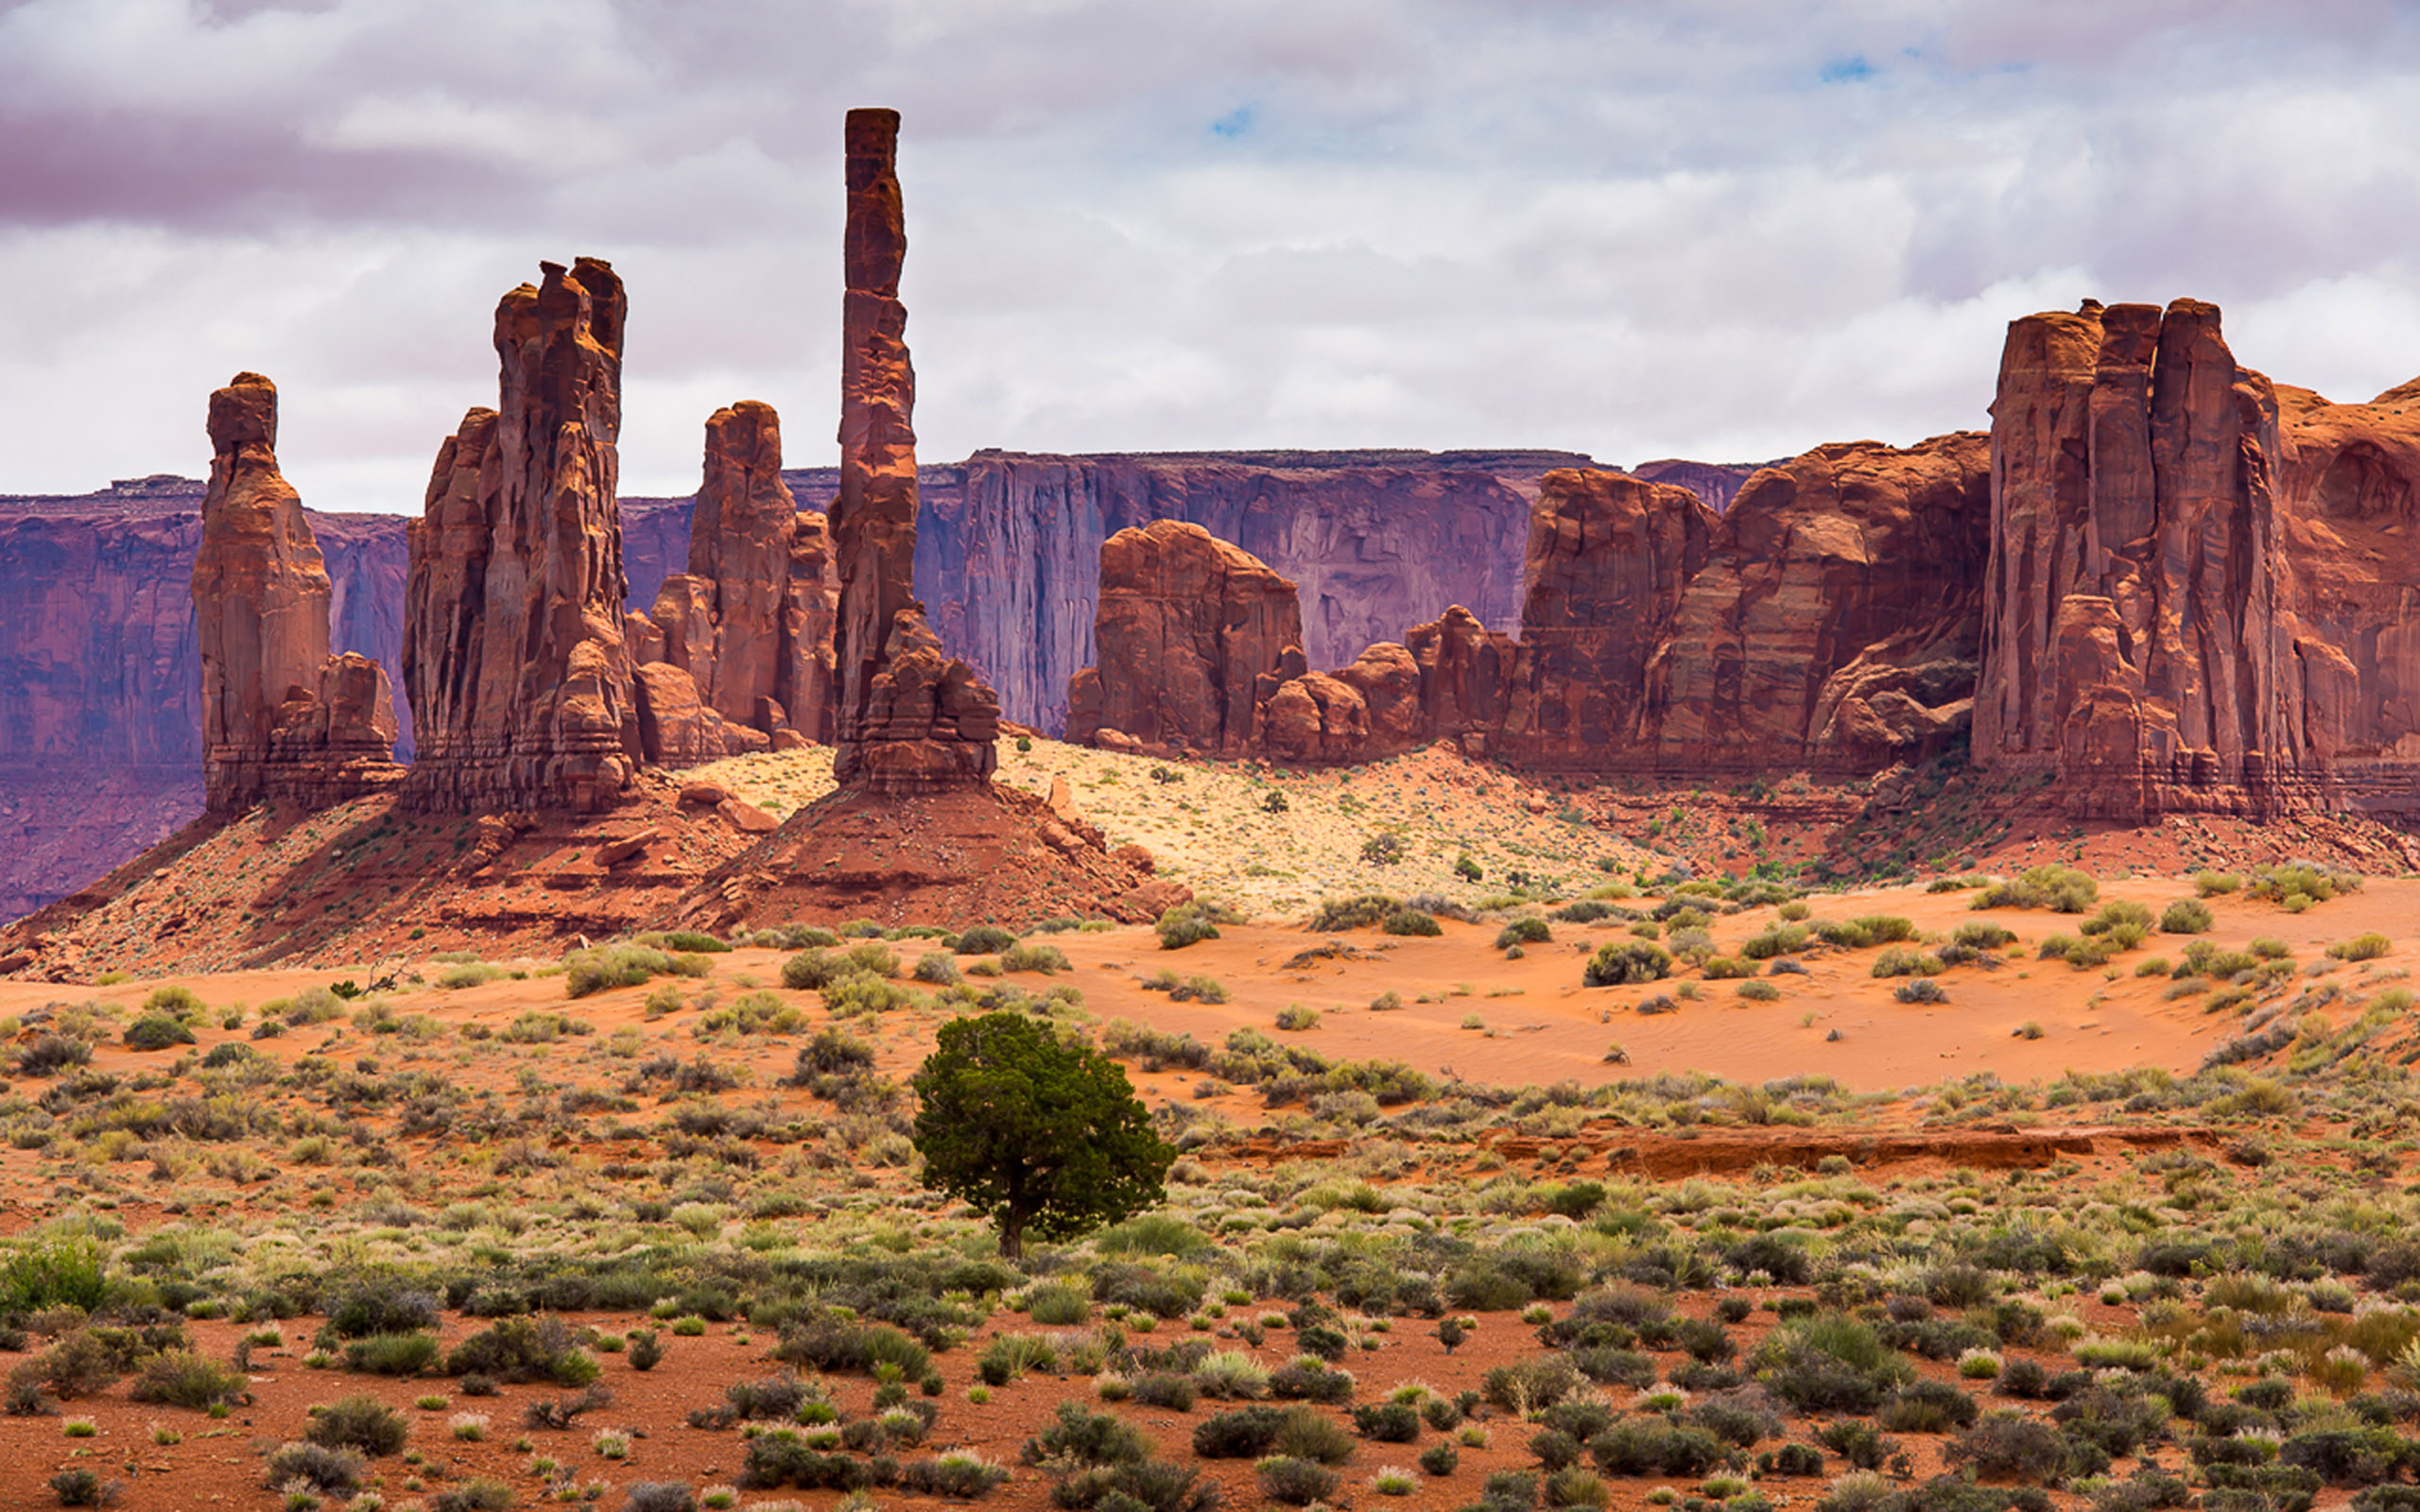 Oasis Wallpaper Iphone 5 Landscape Desert Areas With Rocky Sculptures Monument